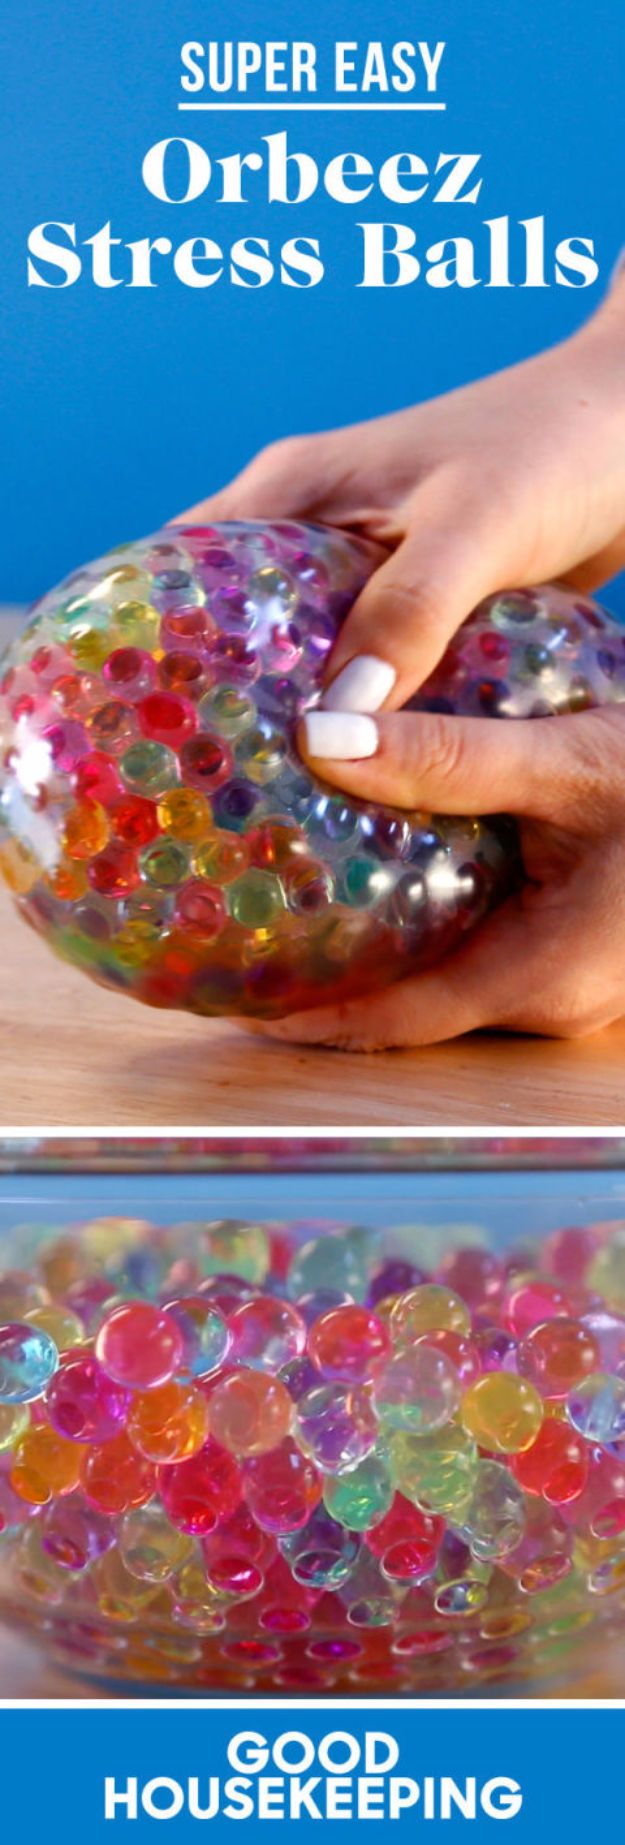 Crafts for Teens to Make and Sell - DIY Orbeez Stress Ball - Cheap and Easy DIY Ideas To Make For Extra Money - Best Things to Sell On Etsy, Dollar Store Craft Ideas, Quick Projects for Teenagers To Make Spending Cash - DIY Gifts, Wall Art, School Supplies, Room Decor, Jewelry, Fashion, Hair Accessories, Bracelets, Magnets #teencrafts #craftstosell #etsyideass